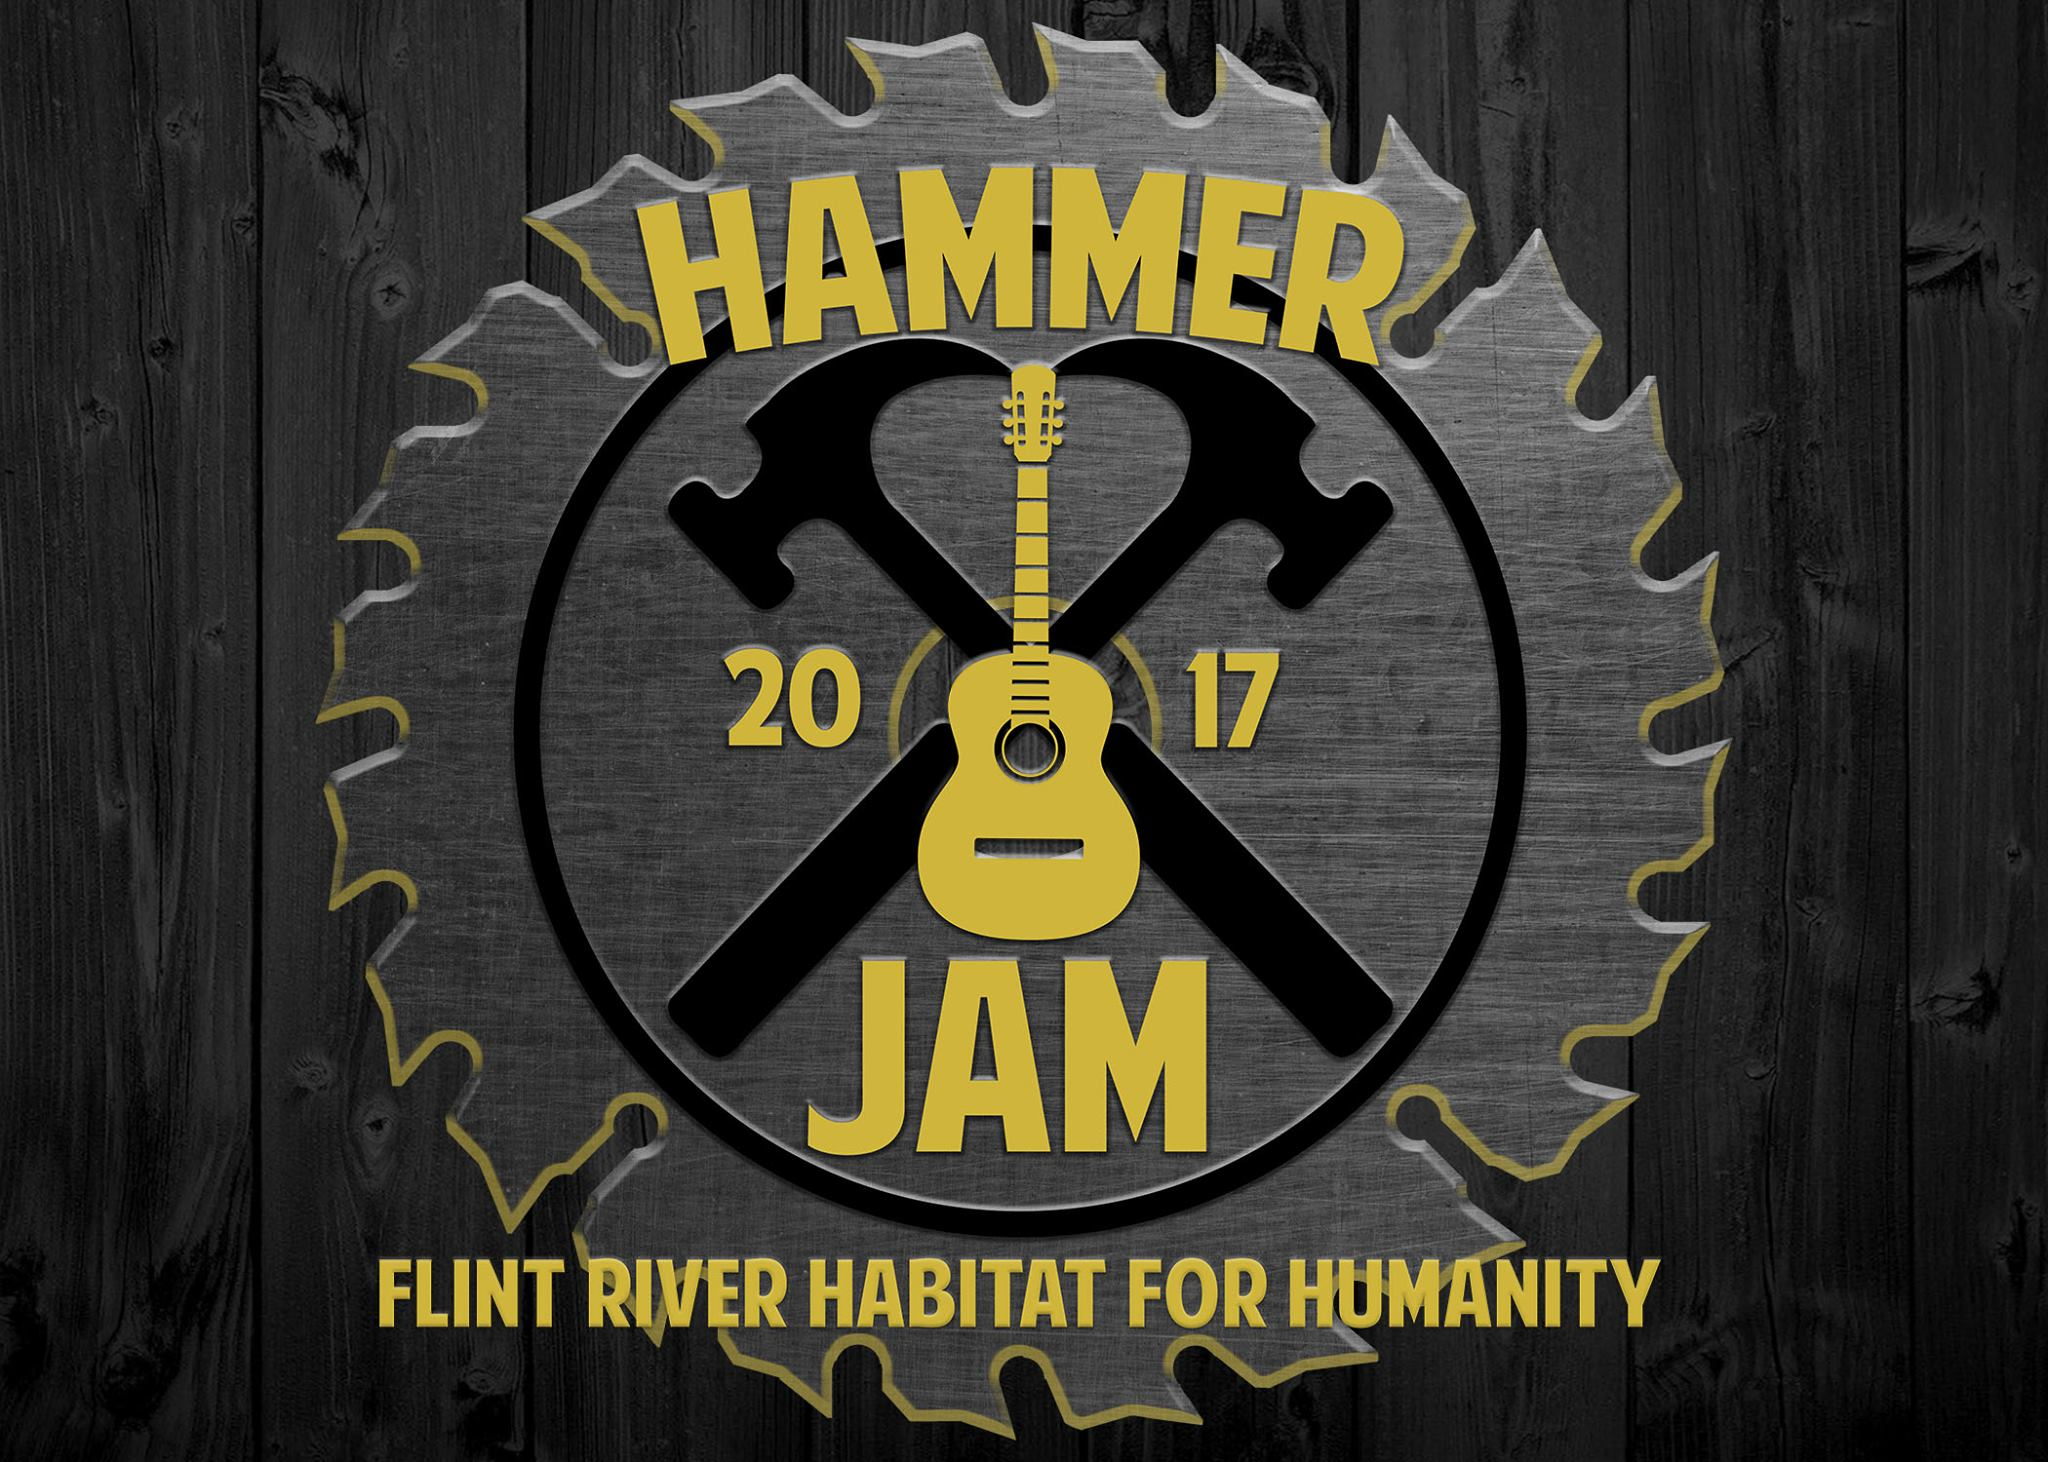 Flint River Habitat for Humanity Hammer Jam